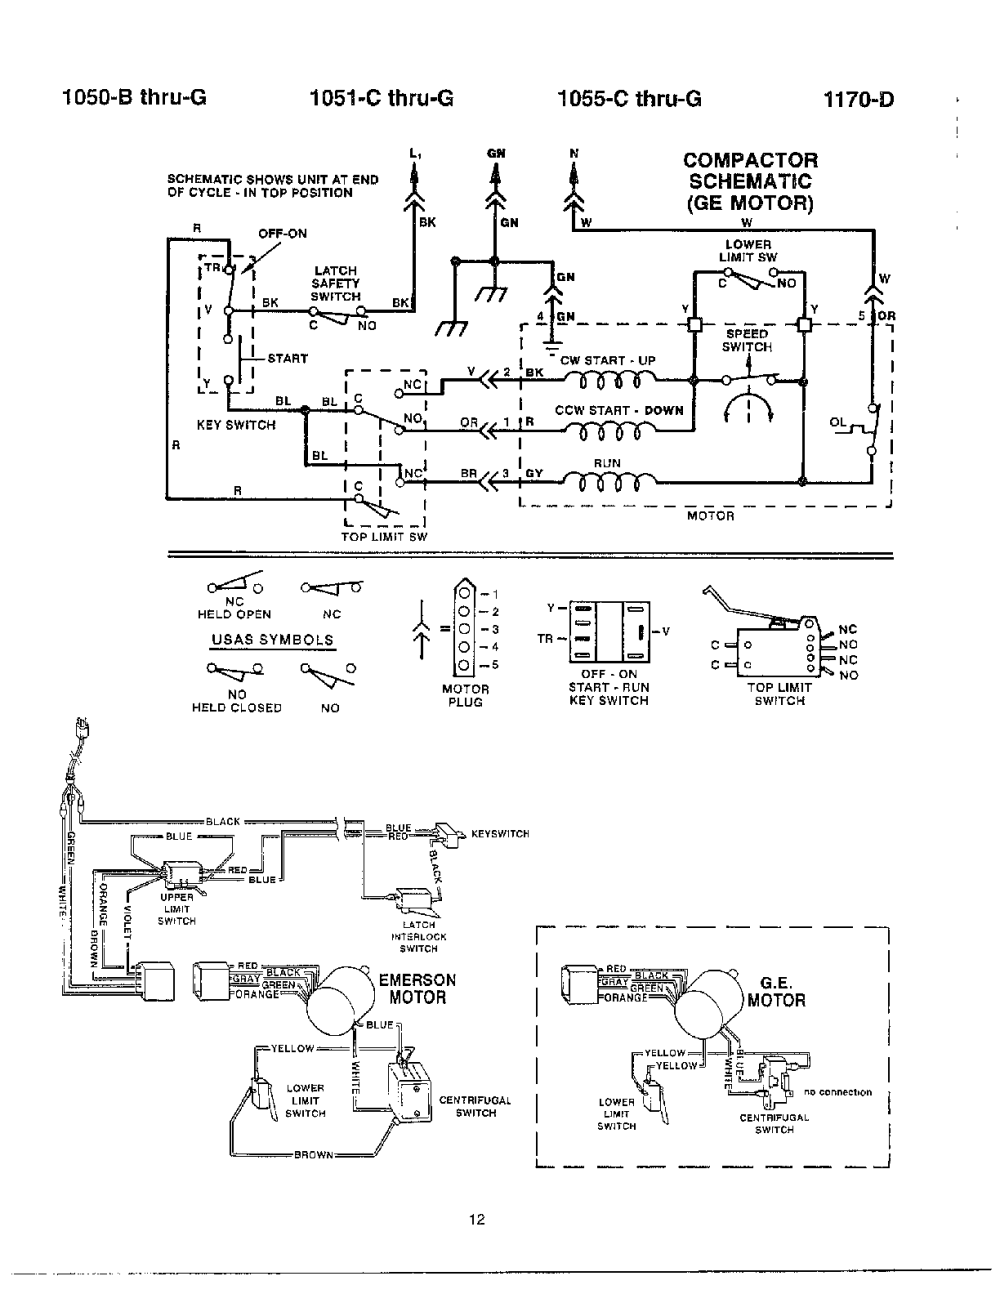 medium resolution of broan model 1050 d thru g compactors genuine parts rh searspartsdirect com whirlpool wiring diagrams broan wiring diagram for broan model c100